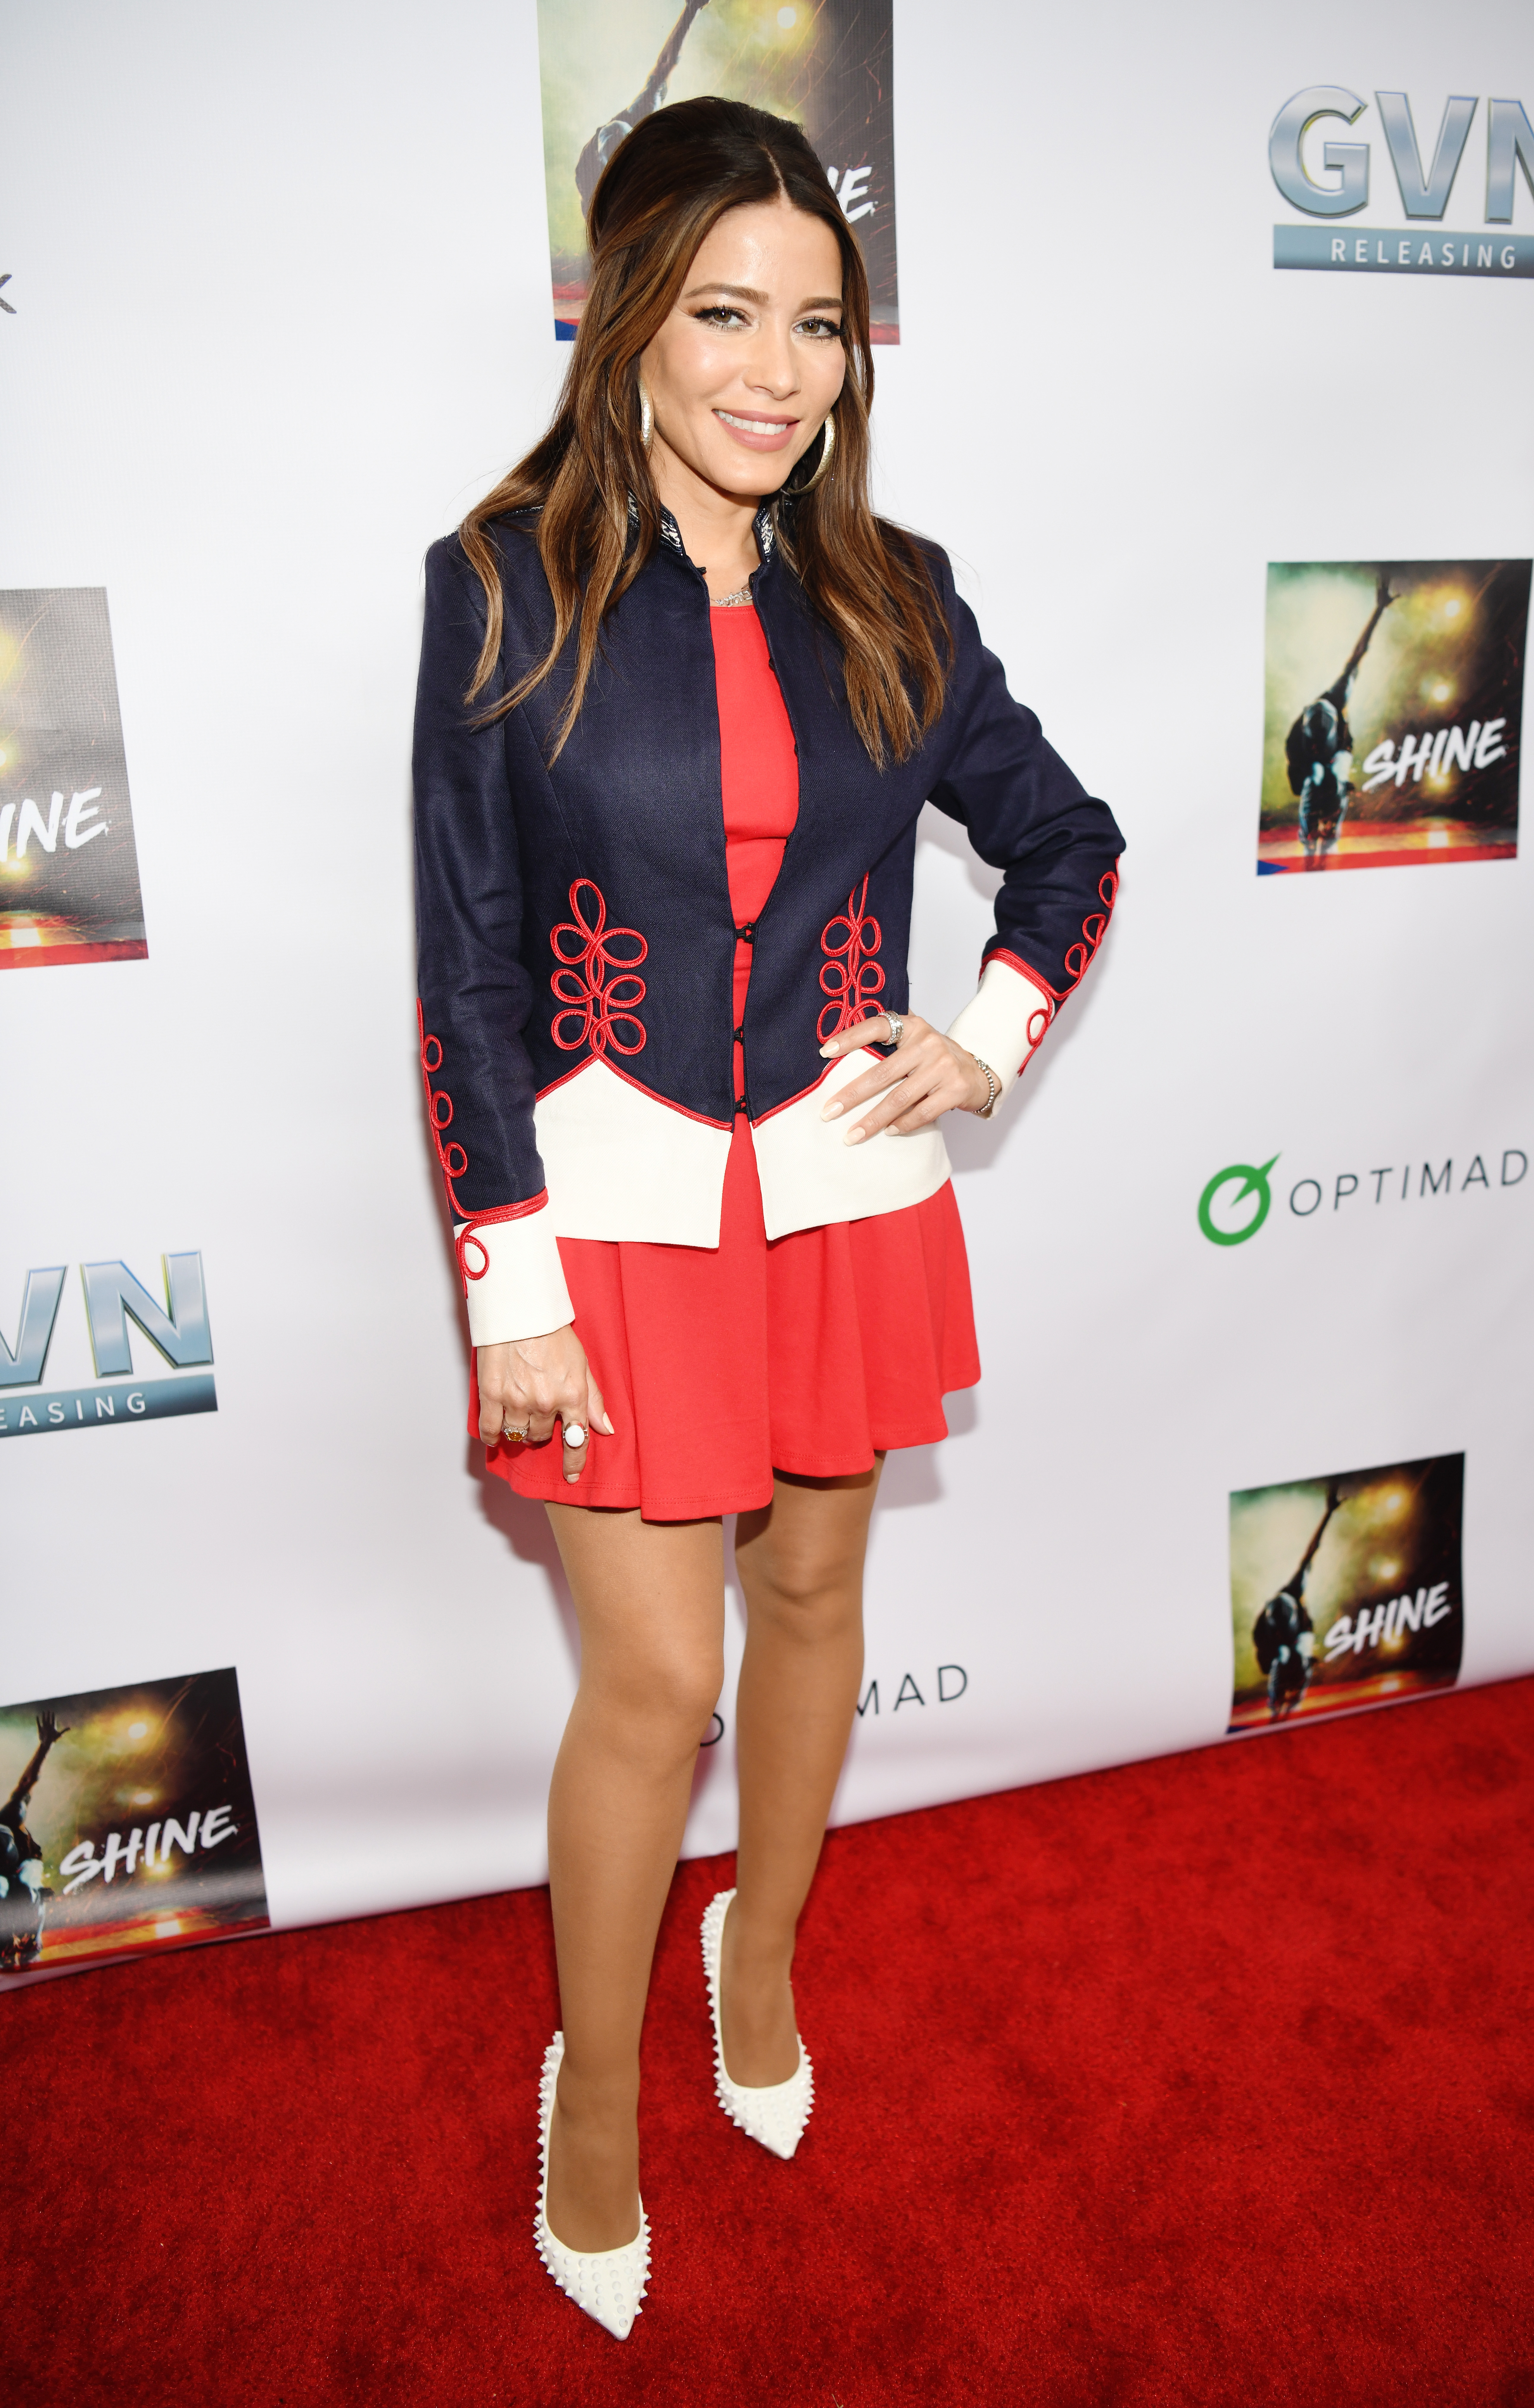 "Premiere Of GVN Releasing's ""Shine"" - Arrivals"